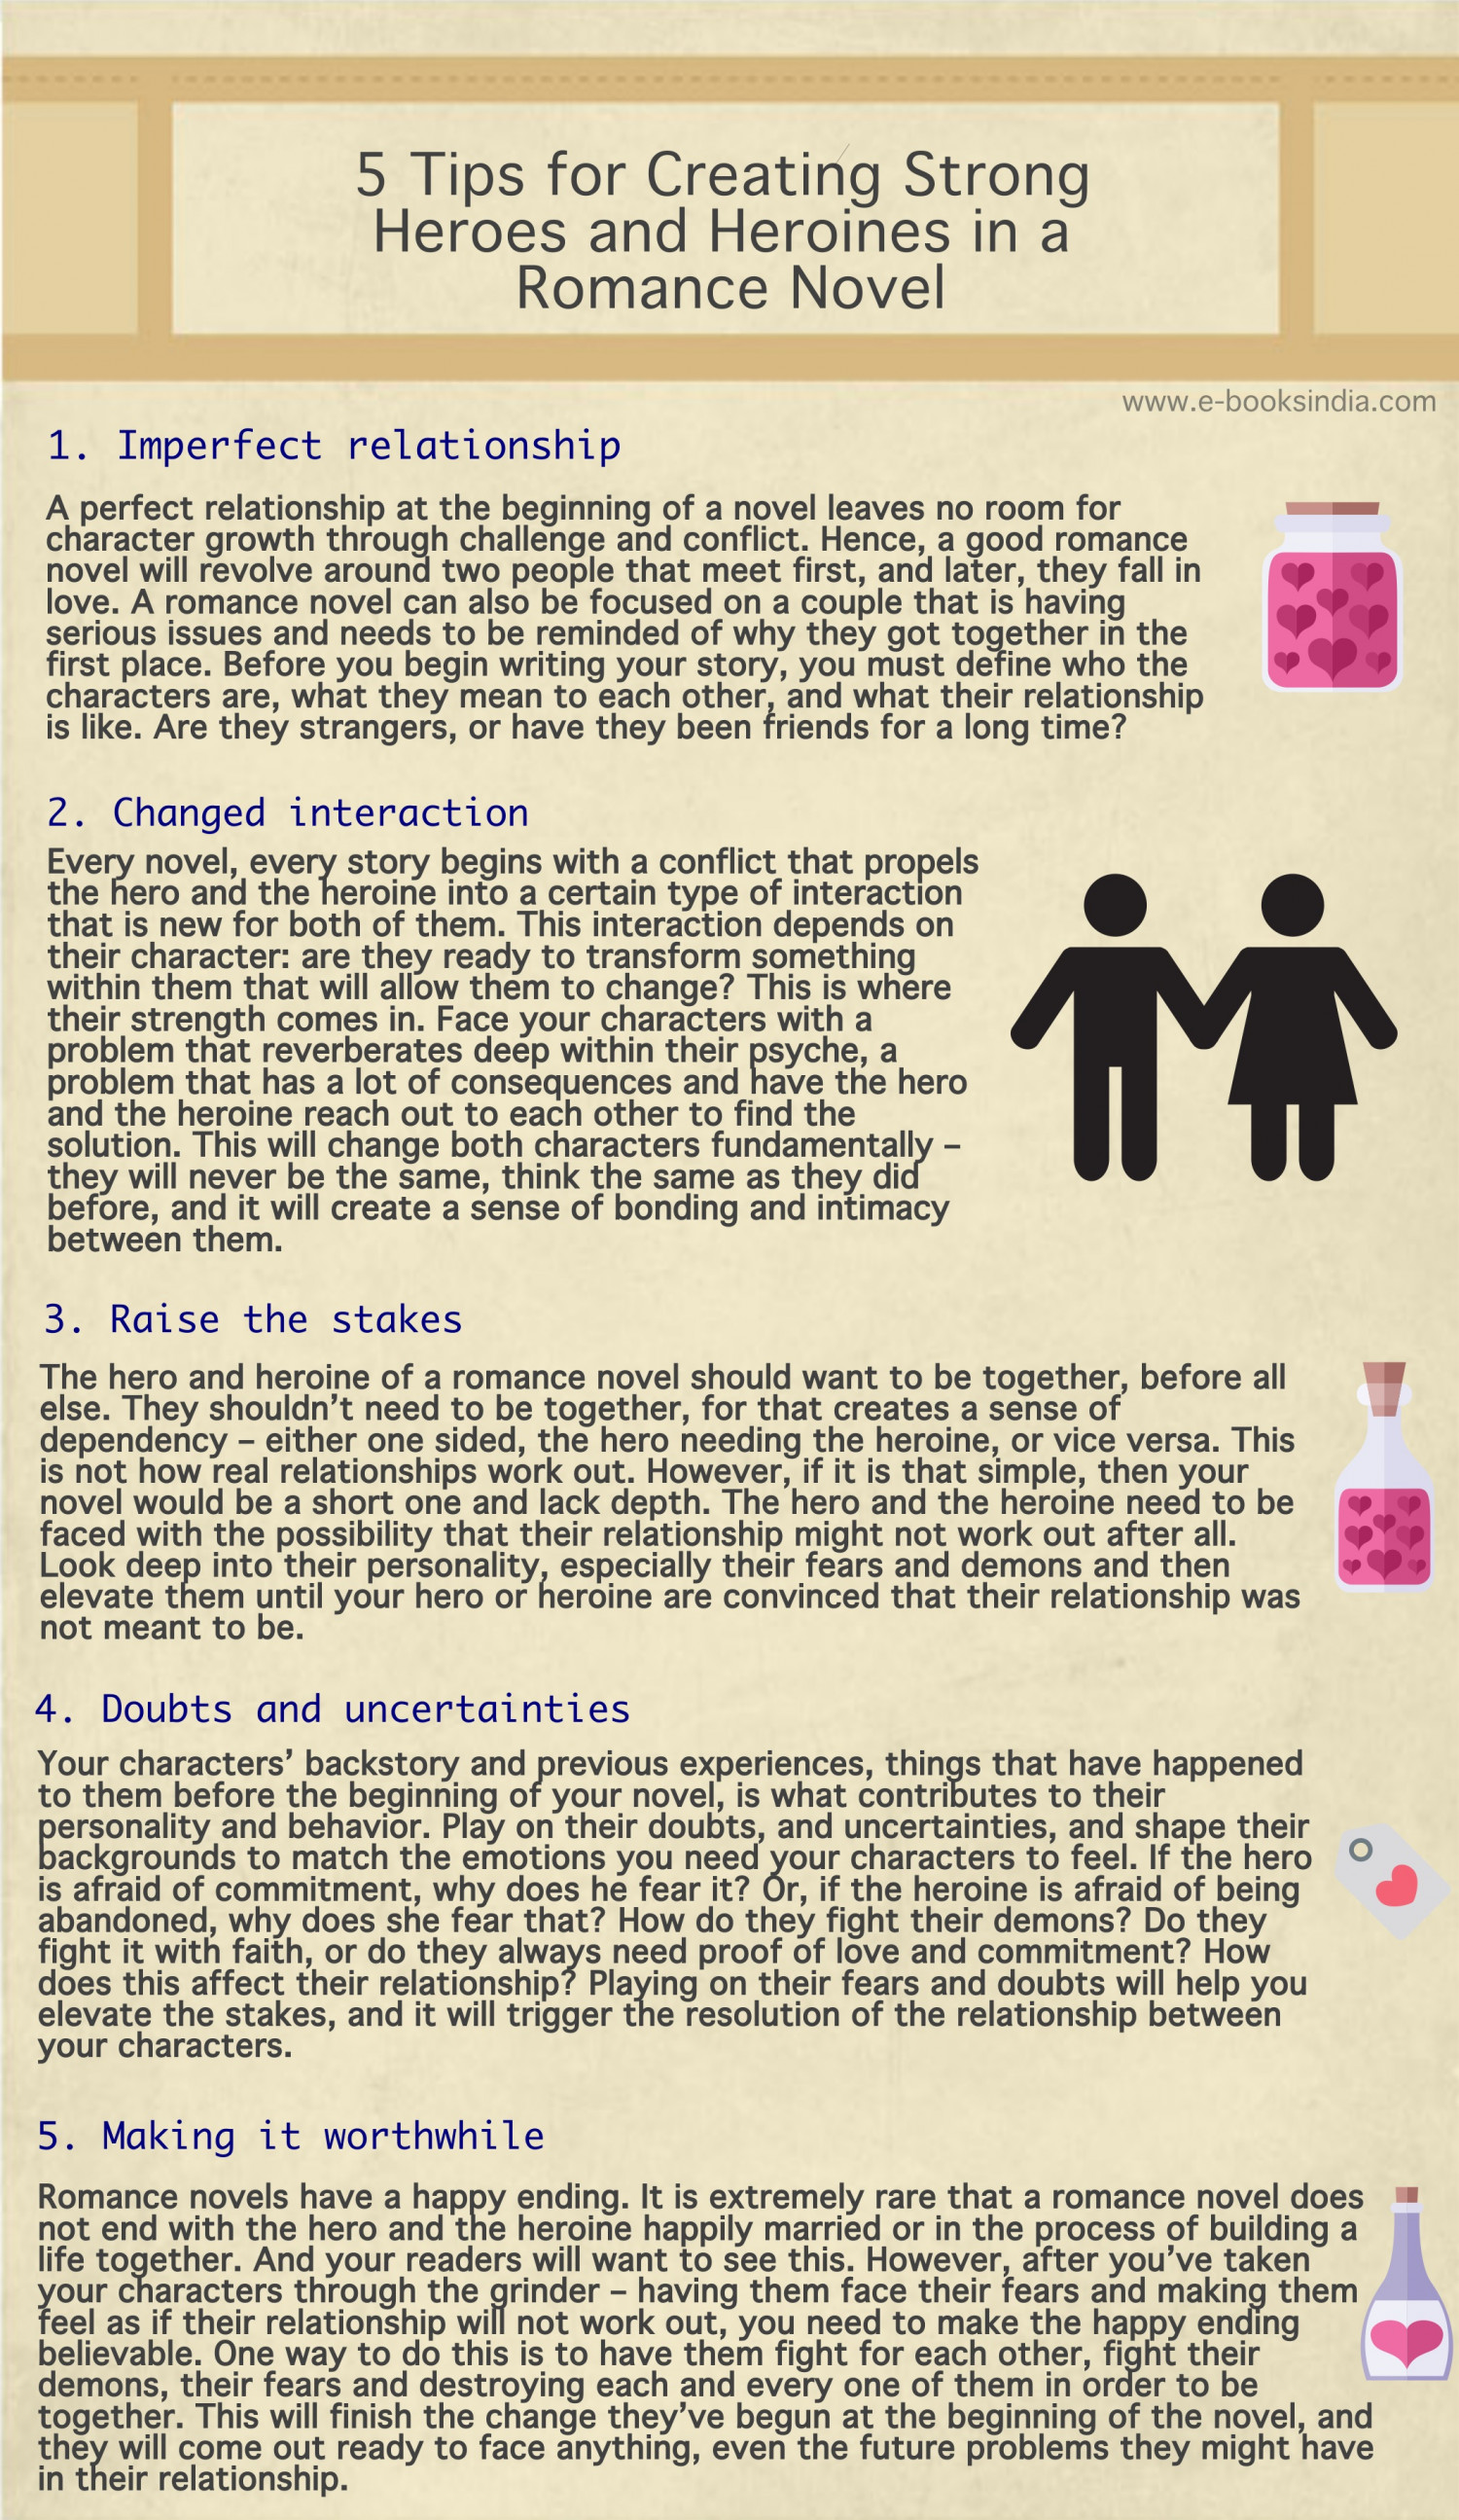 5 Tips for Creating Strong Heroes and Heroines in a Romance Novel Infographic